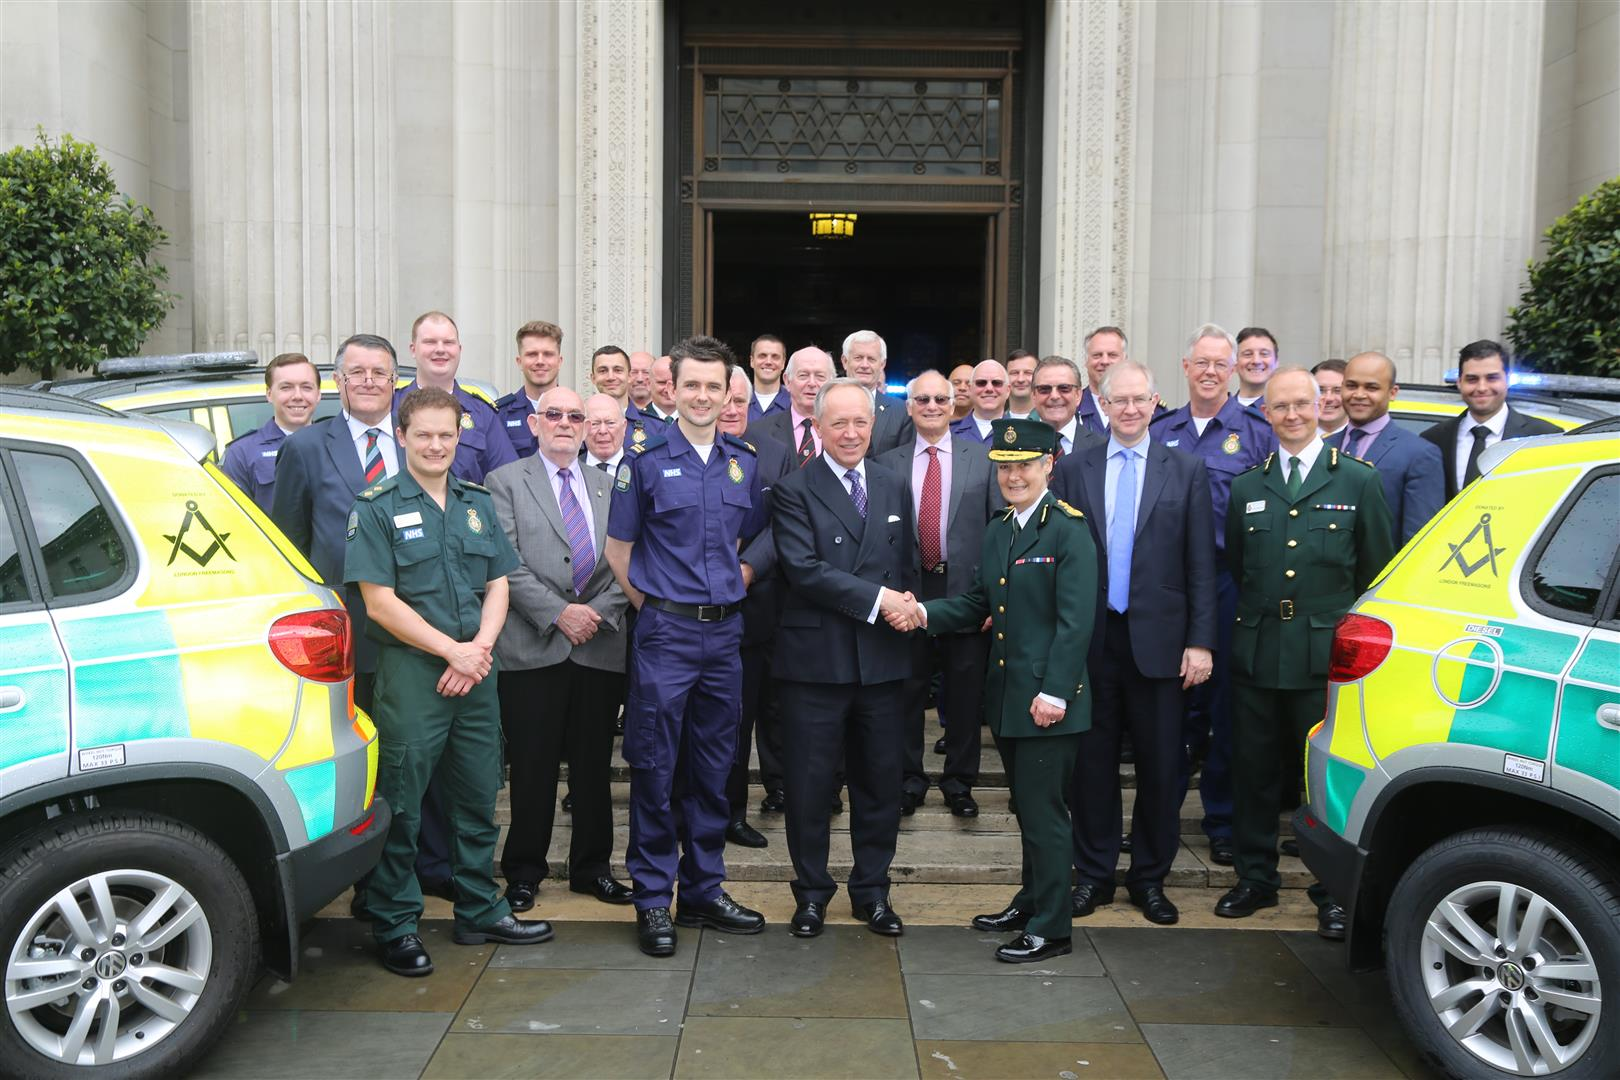 MORE MASONIC SUPPORT FOR THE LONDON EMERGENCY SERVICES